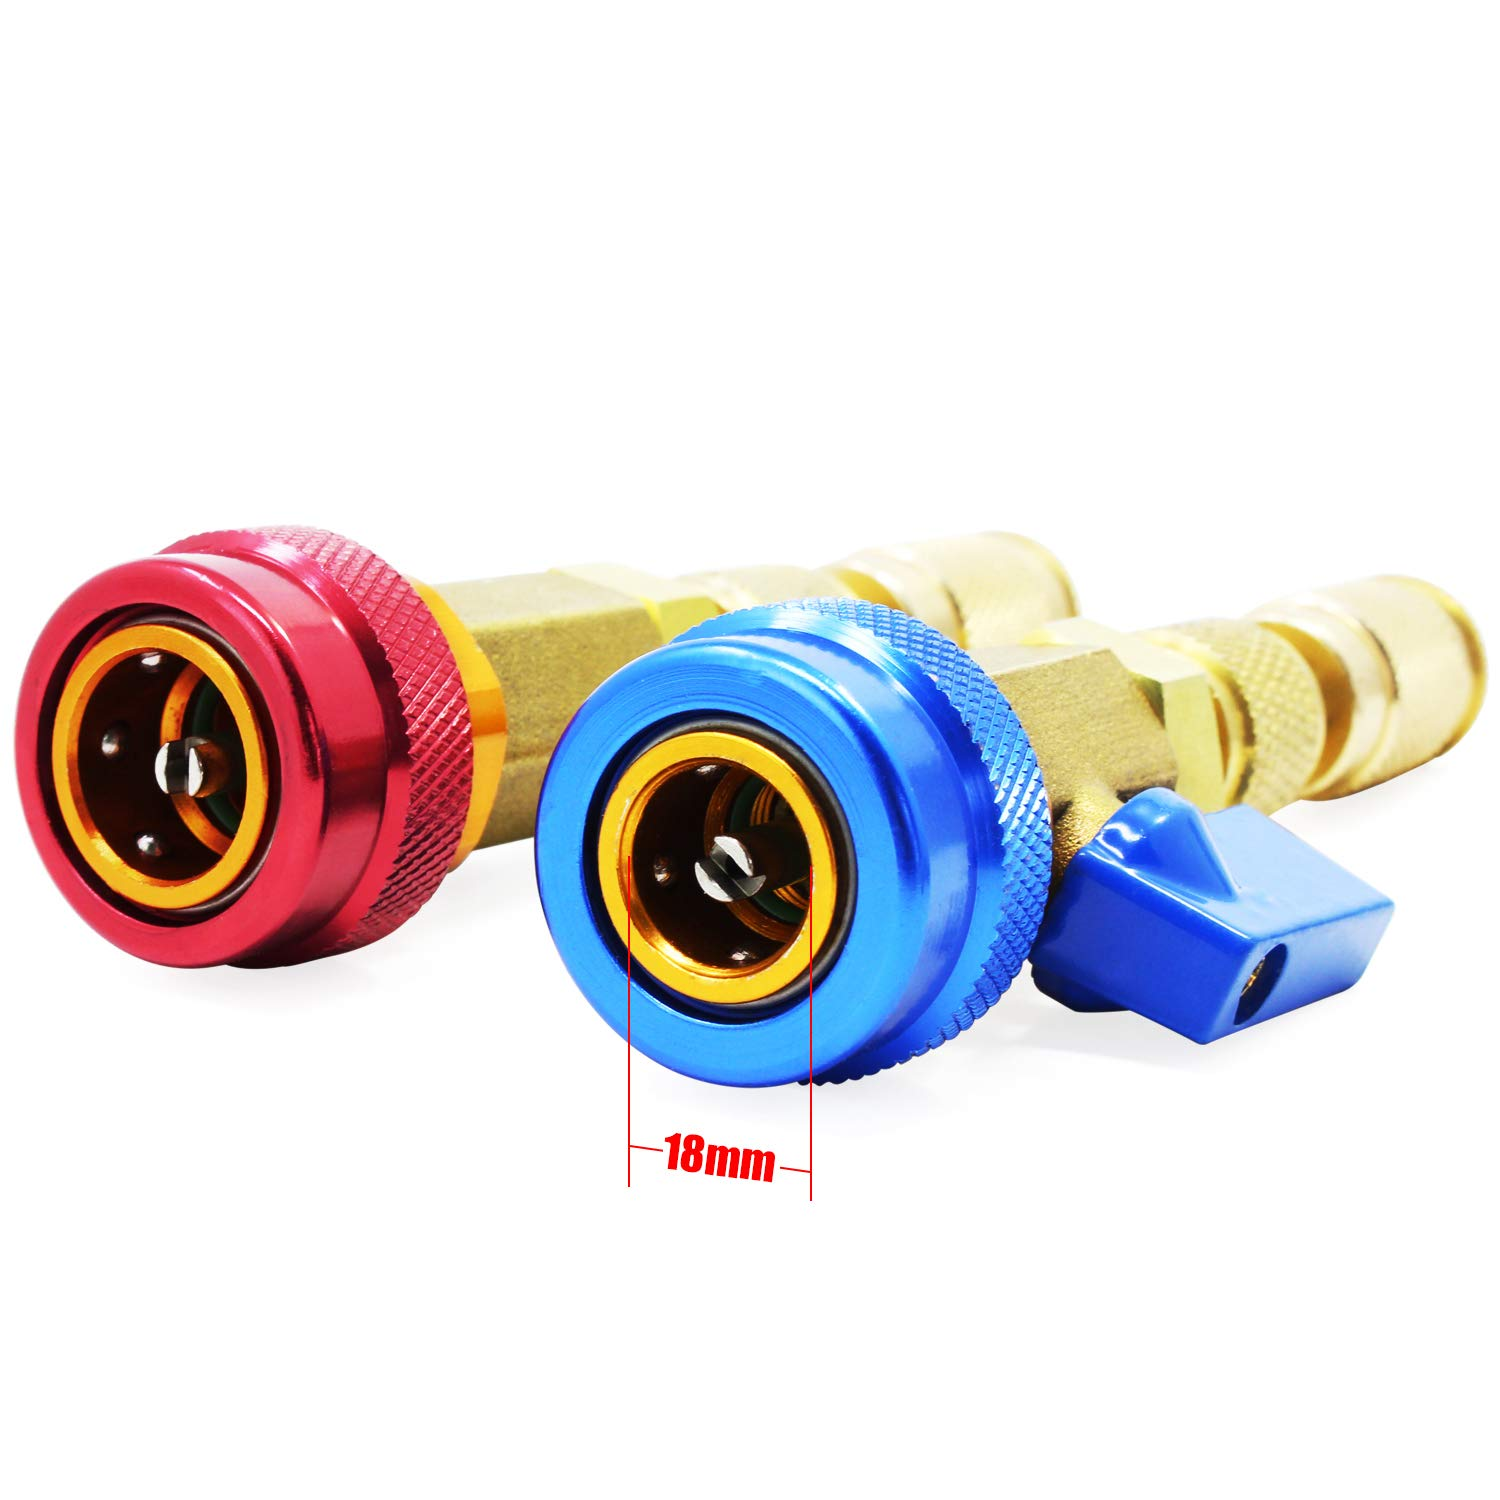 HSeaMall 2PCS Air Conditioning R134A Valve Core Quick Remover Installer High Low Pressure Tool Auto Car Air-conditioning R134a Repair Tool Accessories Blue and Red